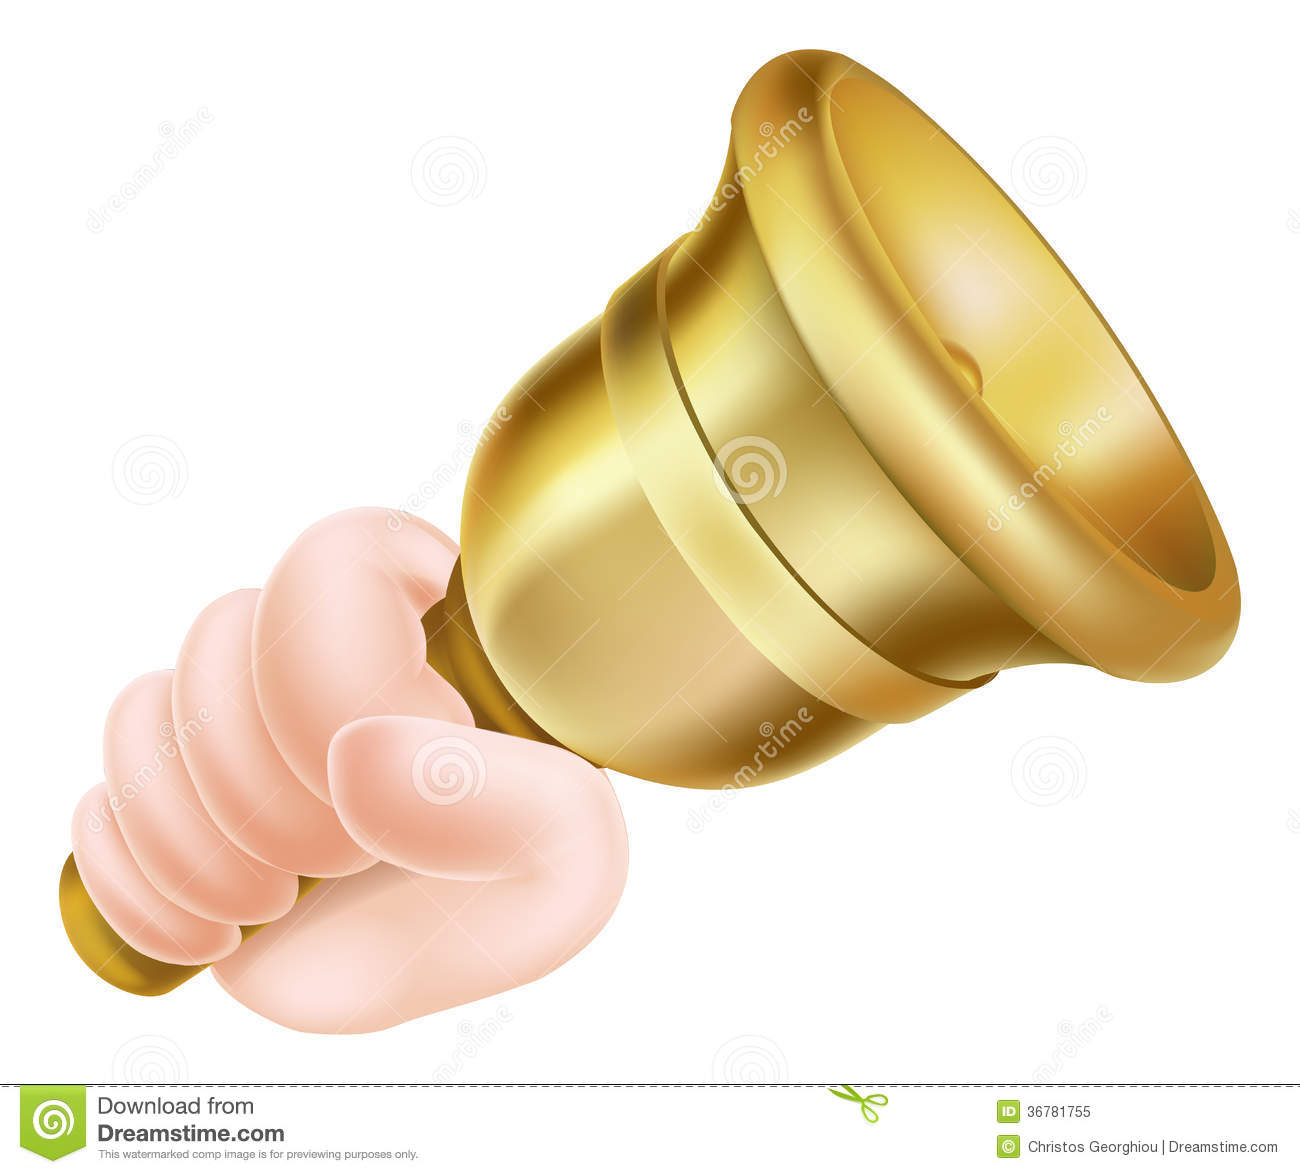 Ringing Gold Hand Bell Royalty Free Stock Photo - Image: 36781755